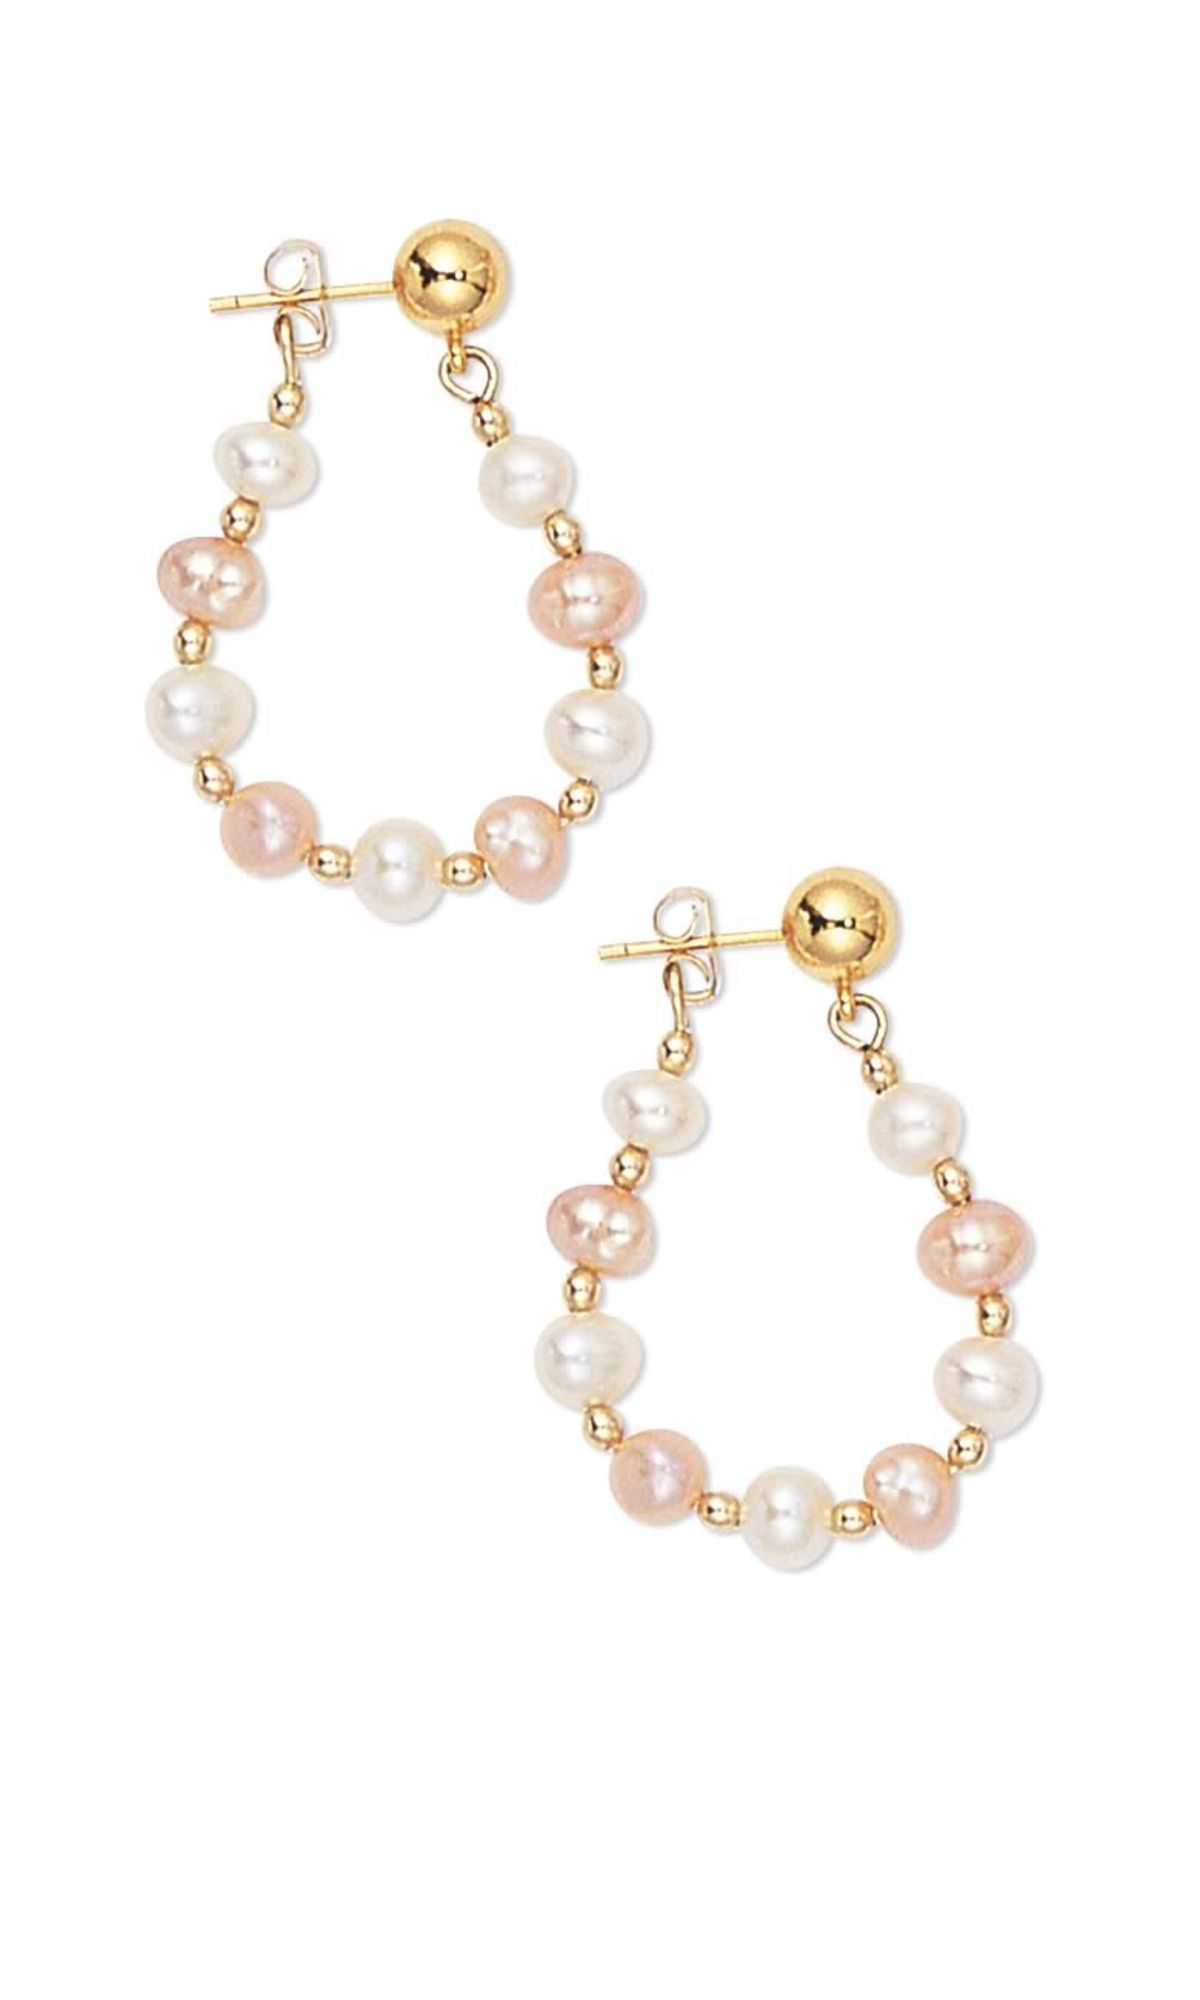 Jewelry Design - Earrings with Cultured Freshwater Pearls and Gold ...